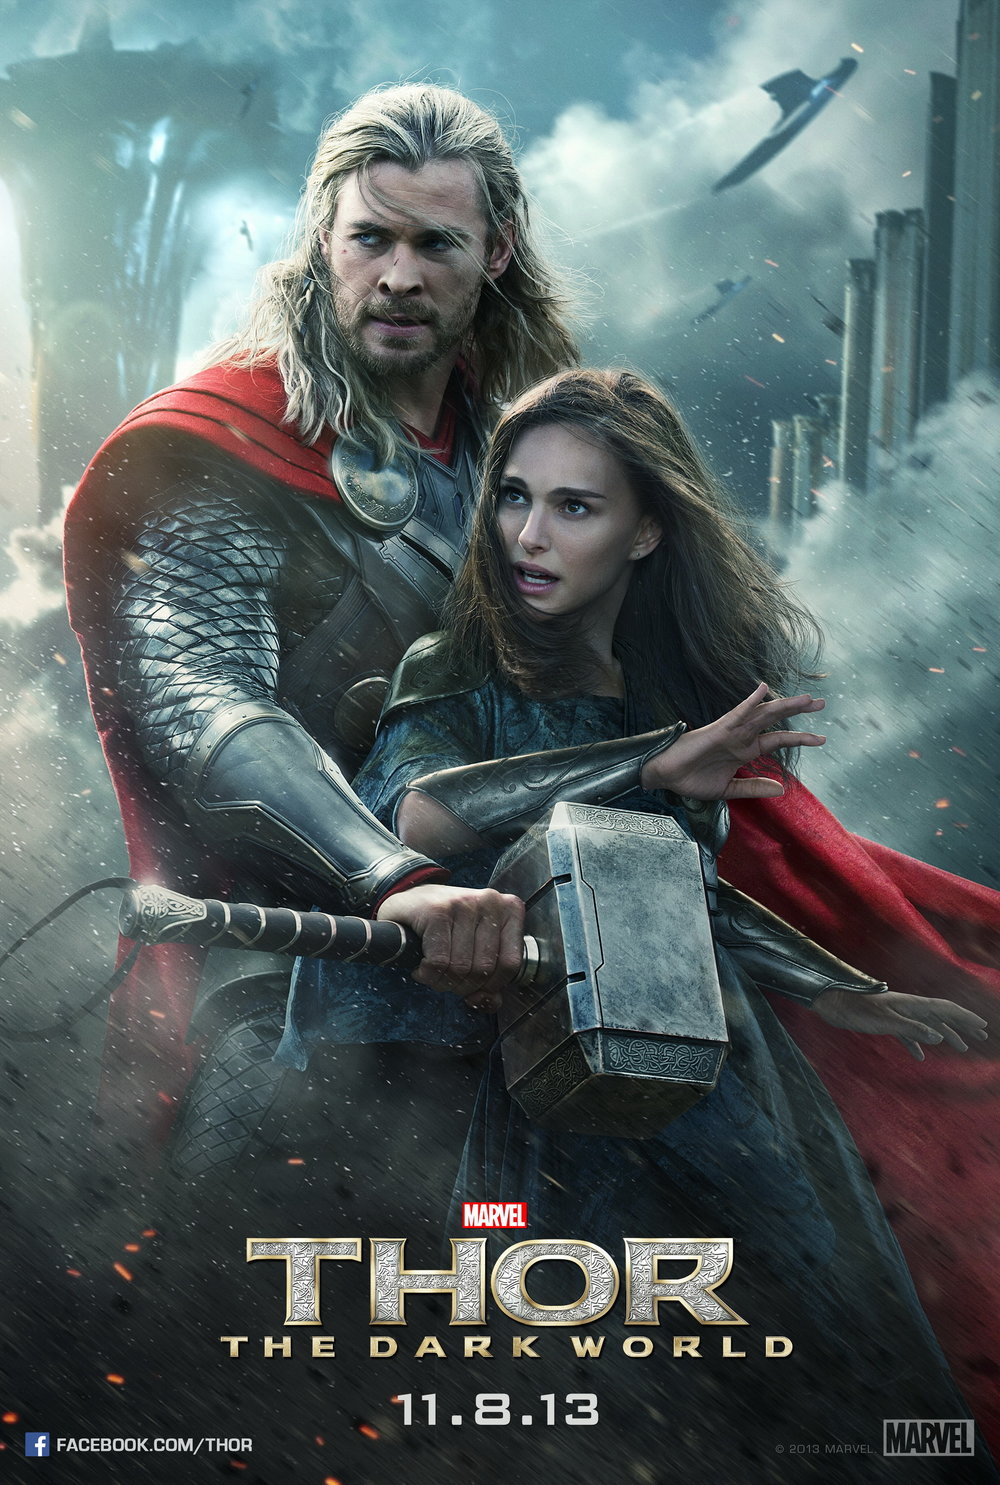 Thor_The_Dark_World_poster_006.jpg